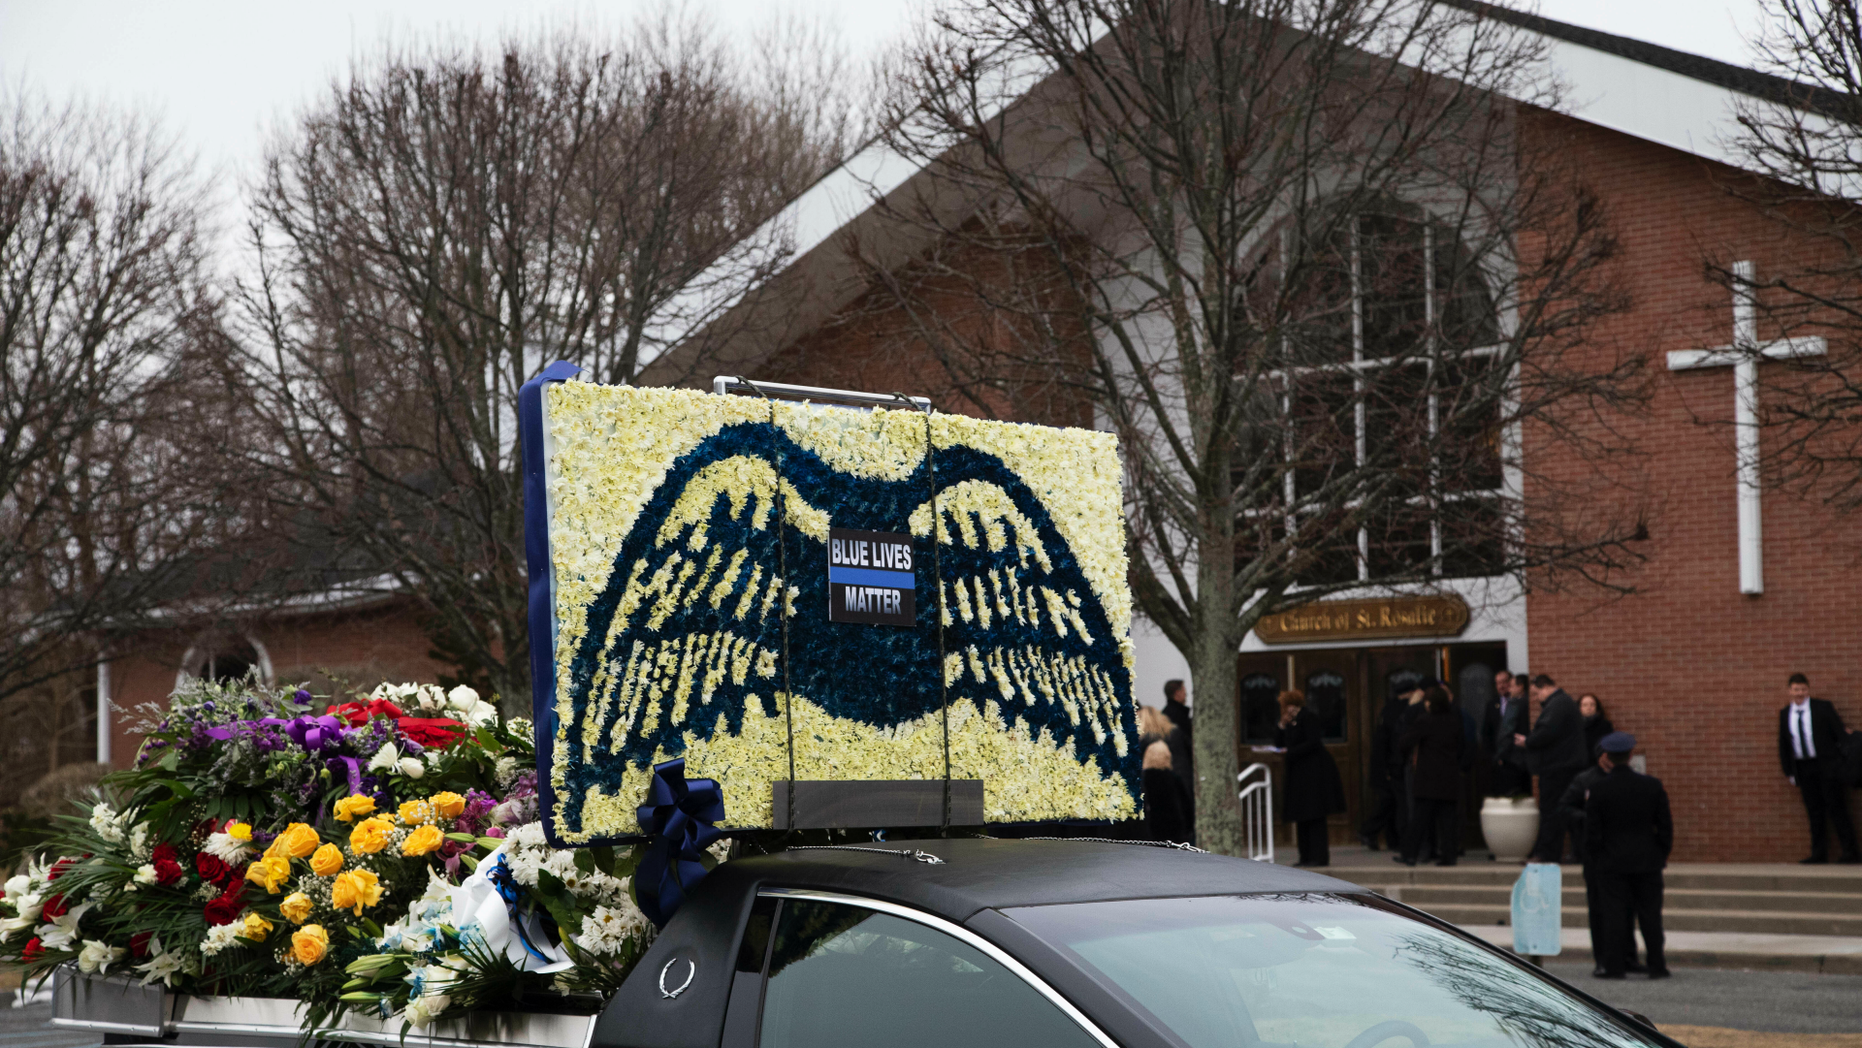 A limousine that is part of the funeral procession for Det. Brian Simonsen, is parked in front of the Church of St. Rosalie in Hampton Bays, N.Y., Wednesday, Feb. 20, 2019. Simonsen, with the New York City Police Department, was killed by friendly fire Feb. 12 as he and six other officers opened fire on a robbery suspect who police say was pointing at them what appeared to be a handgun. (AP Photo/Mark Lennihan)